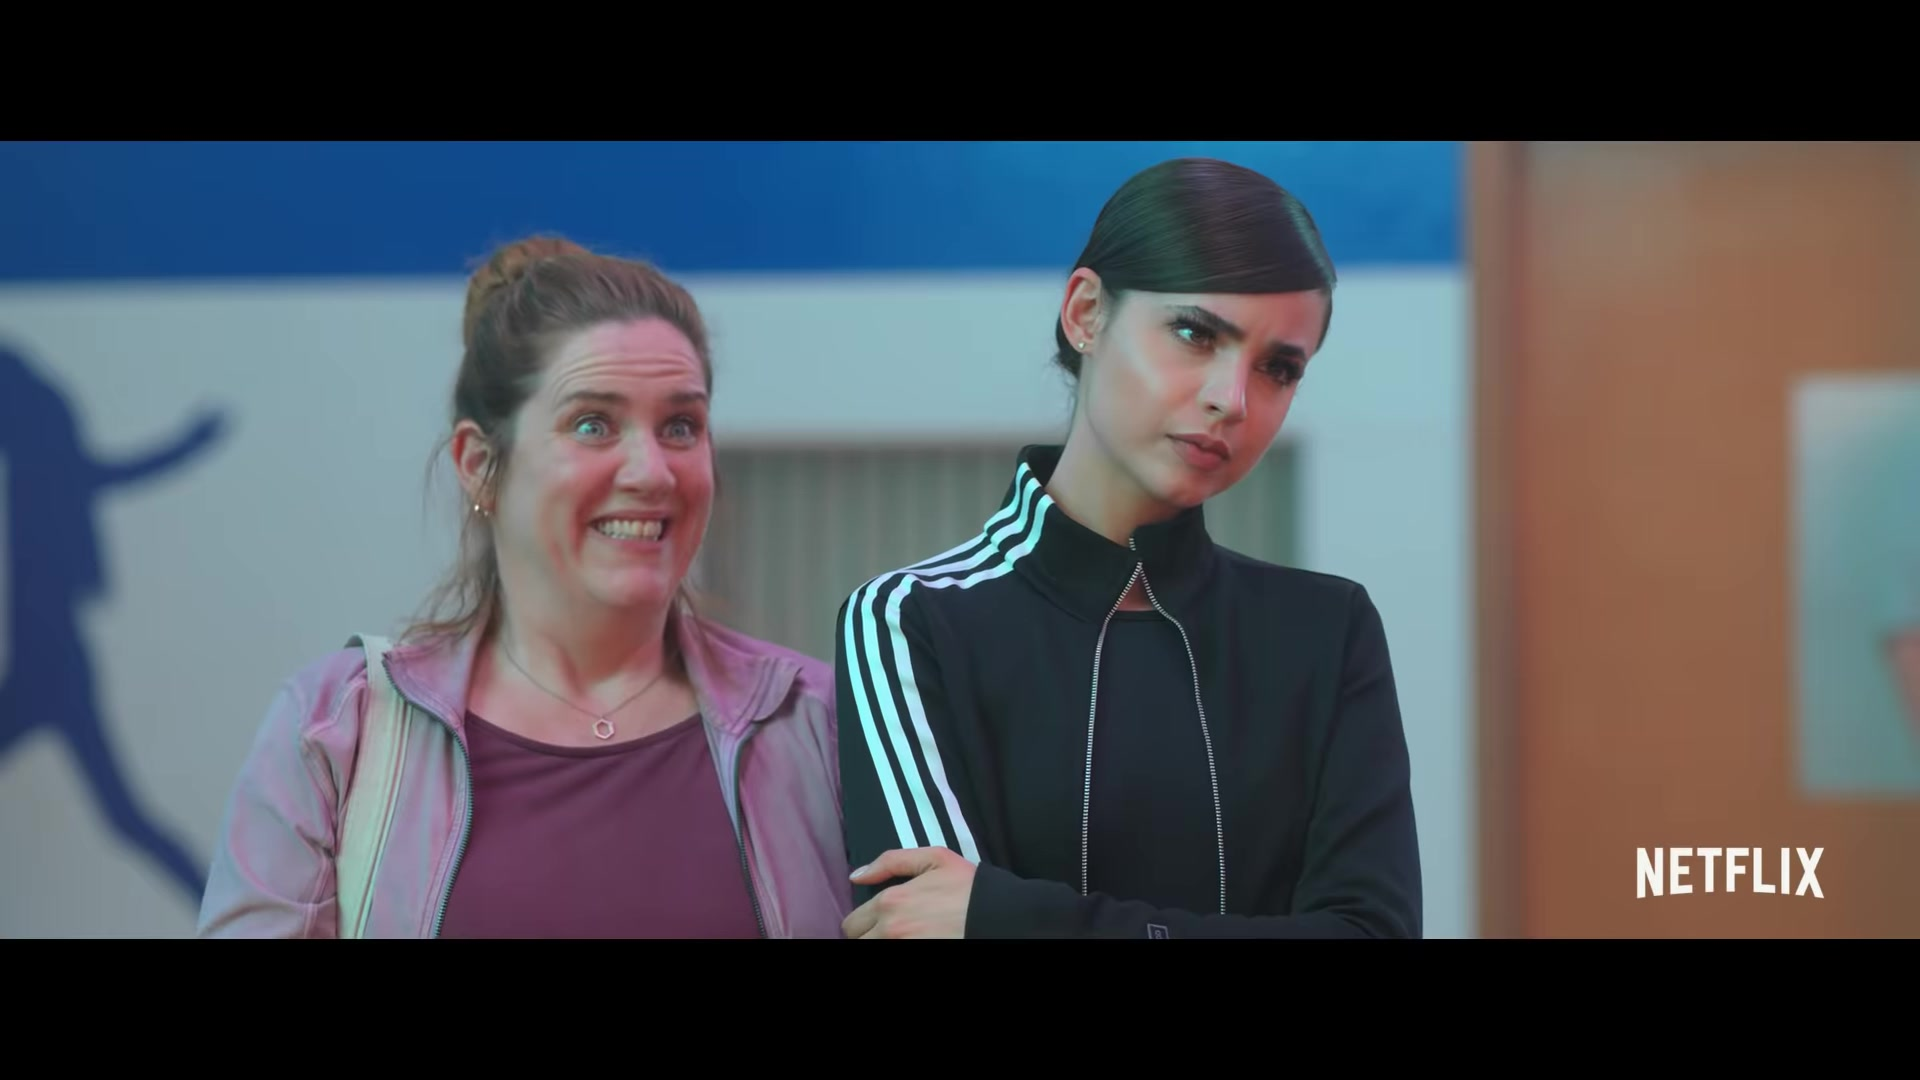 Adidas Jacket Worn by Sofia Carson in Feel the Beat (2020)